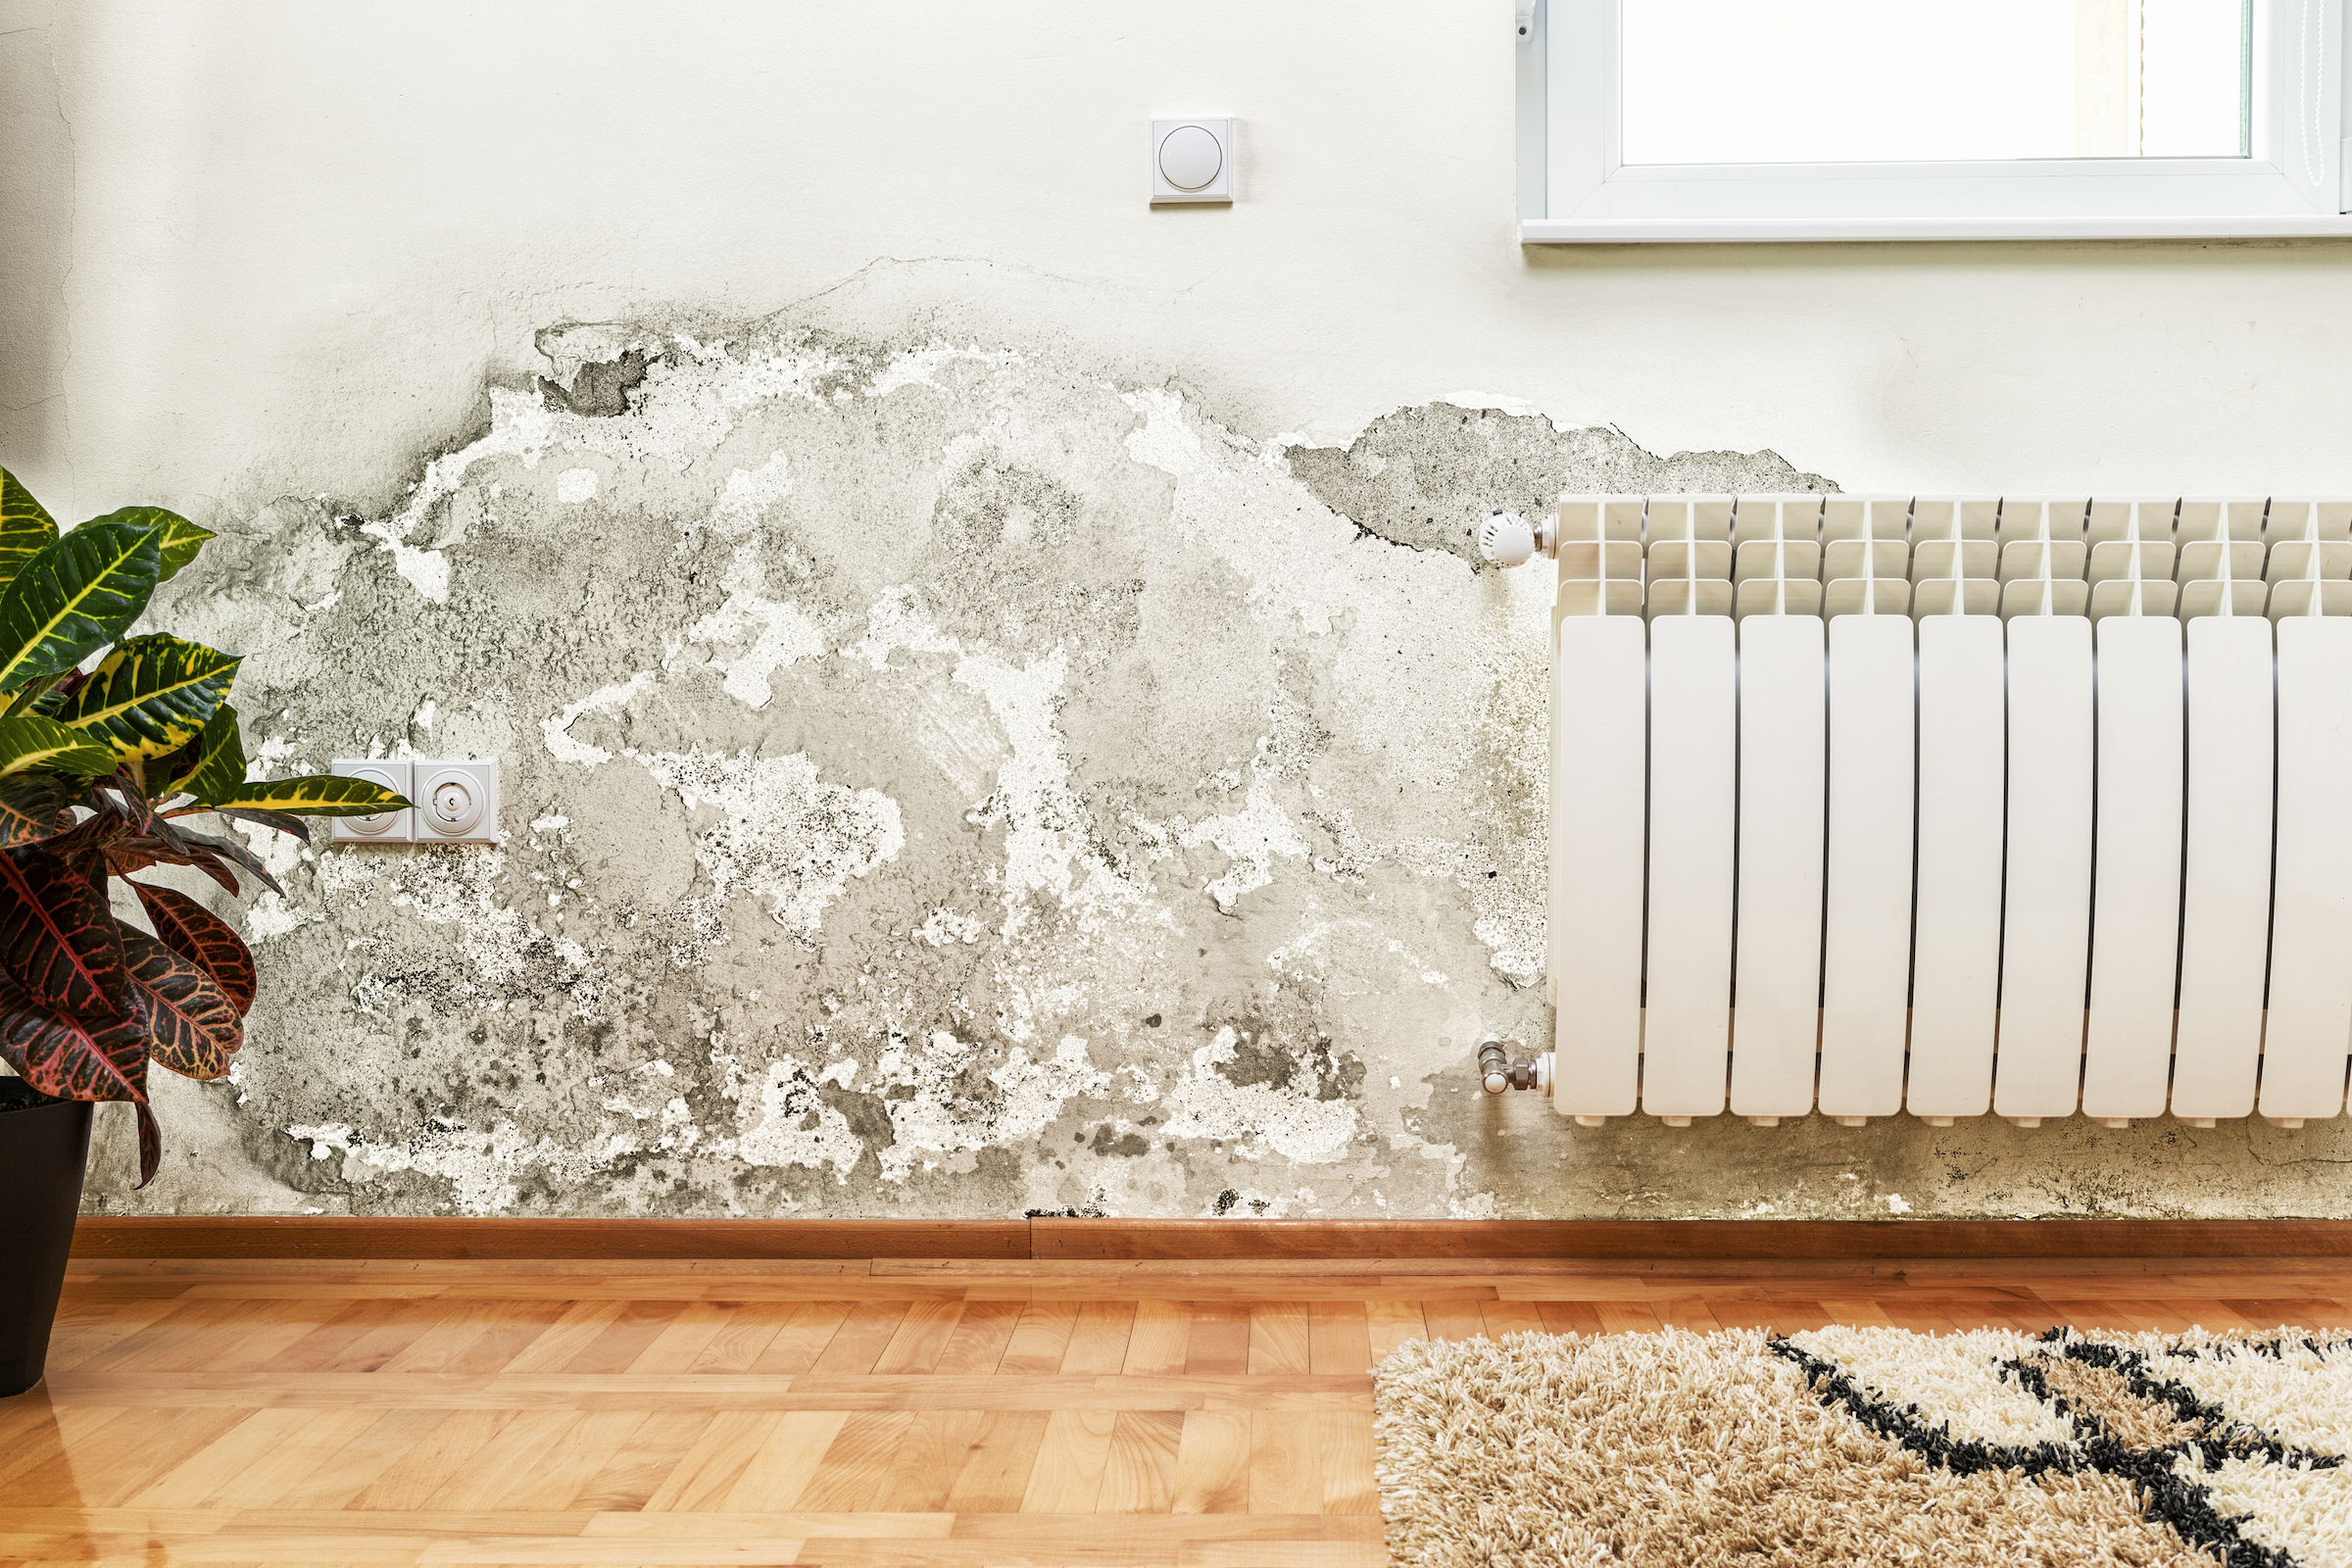 How to get rid of mold in a house: is it dangerous?